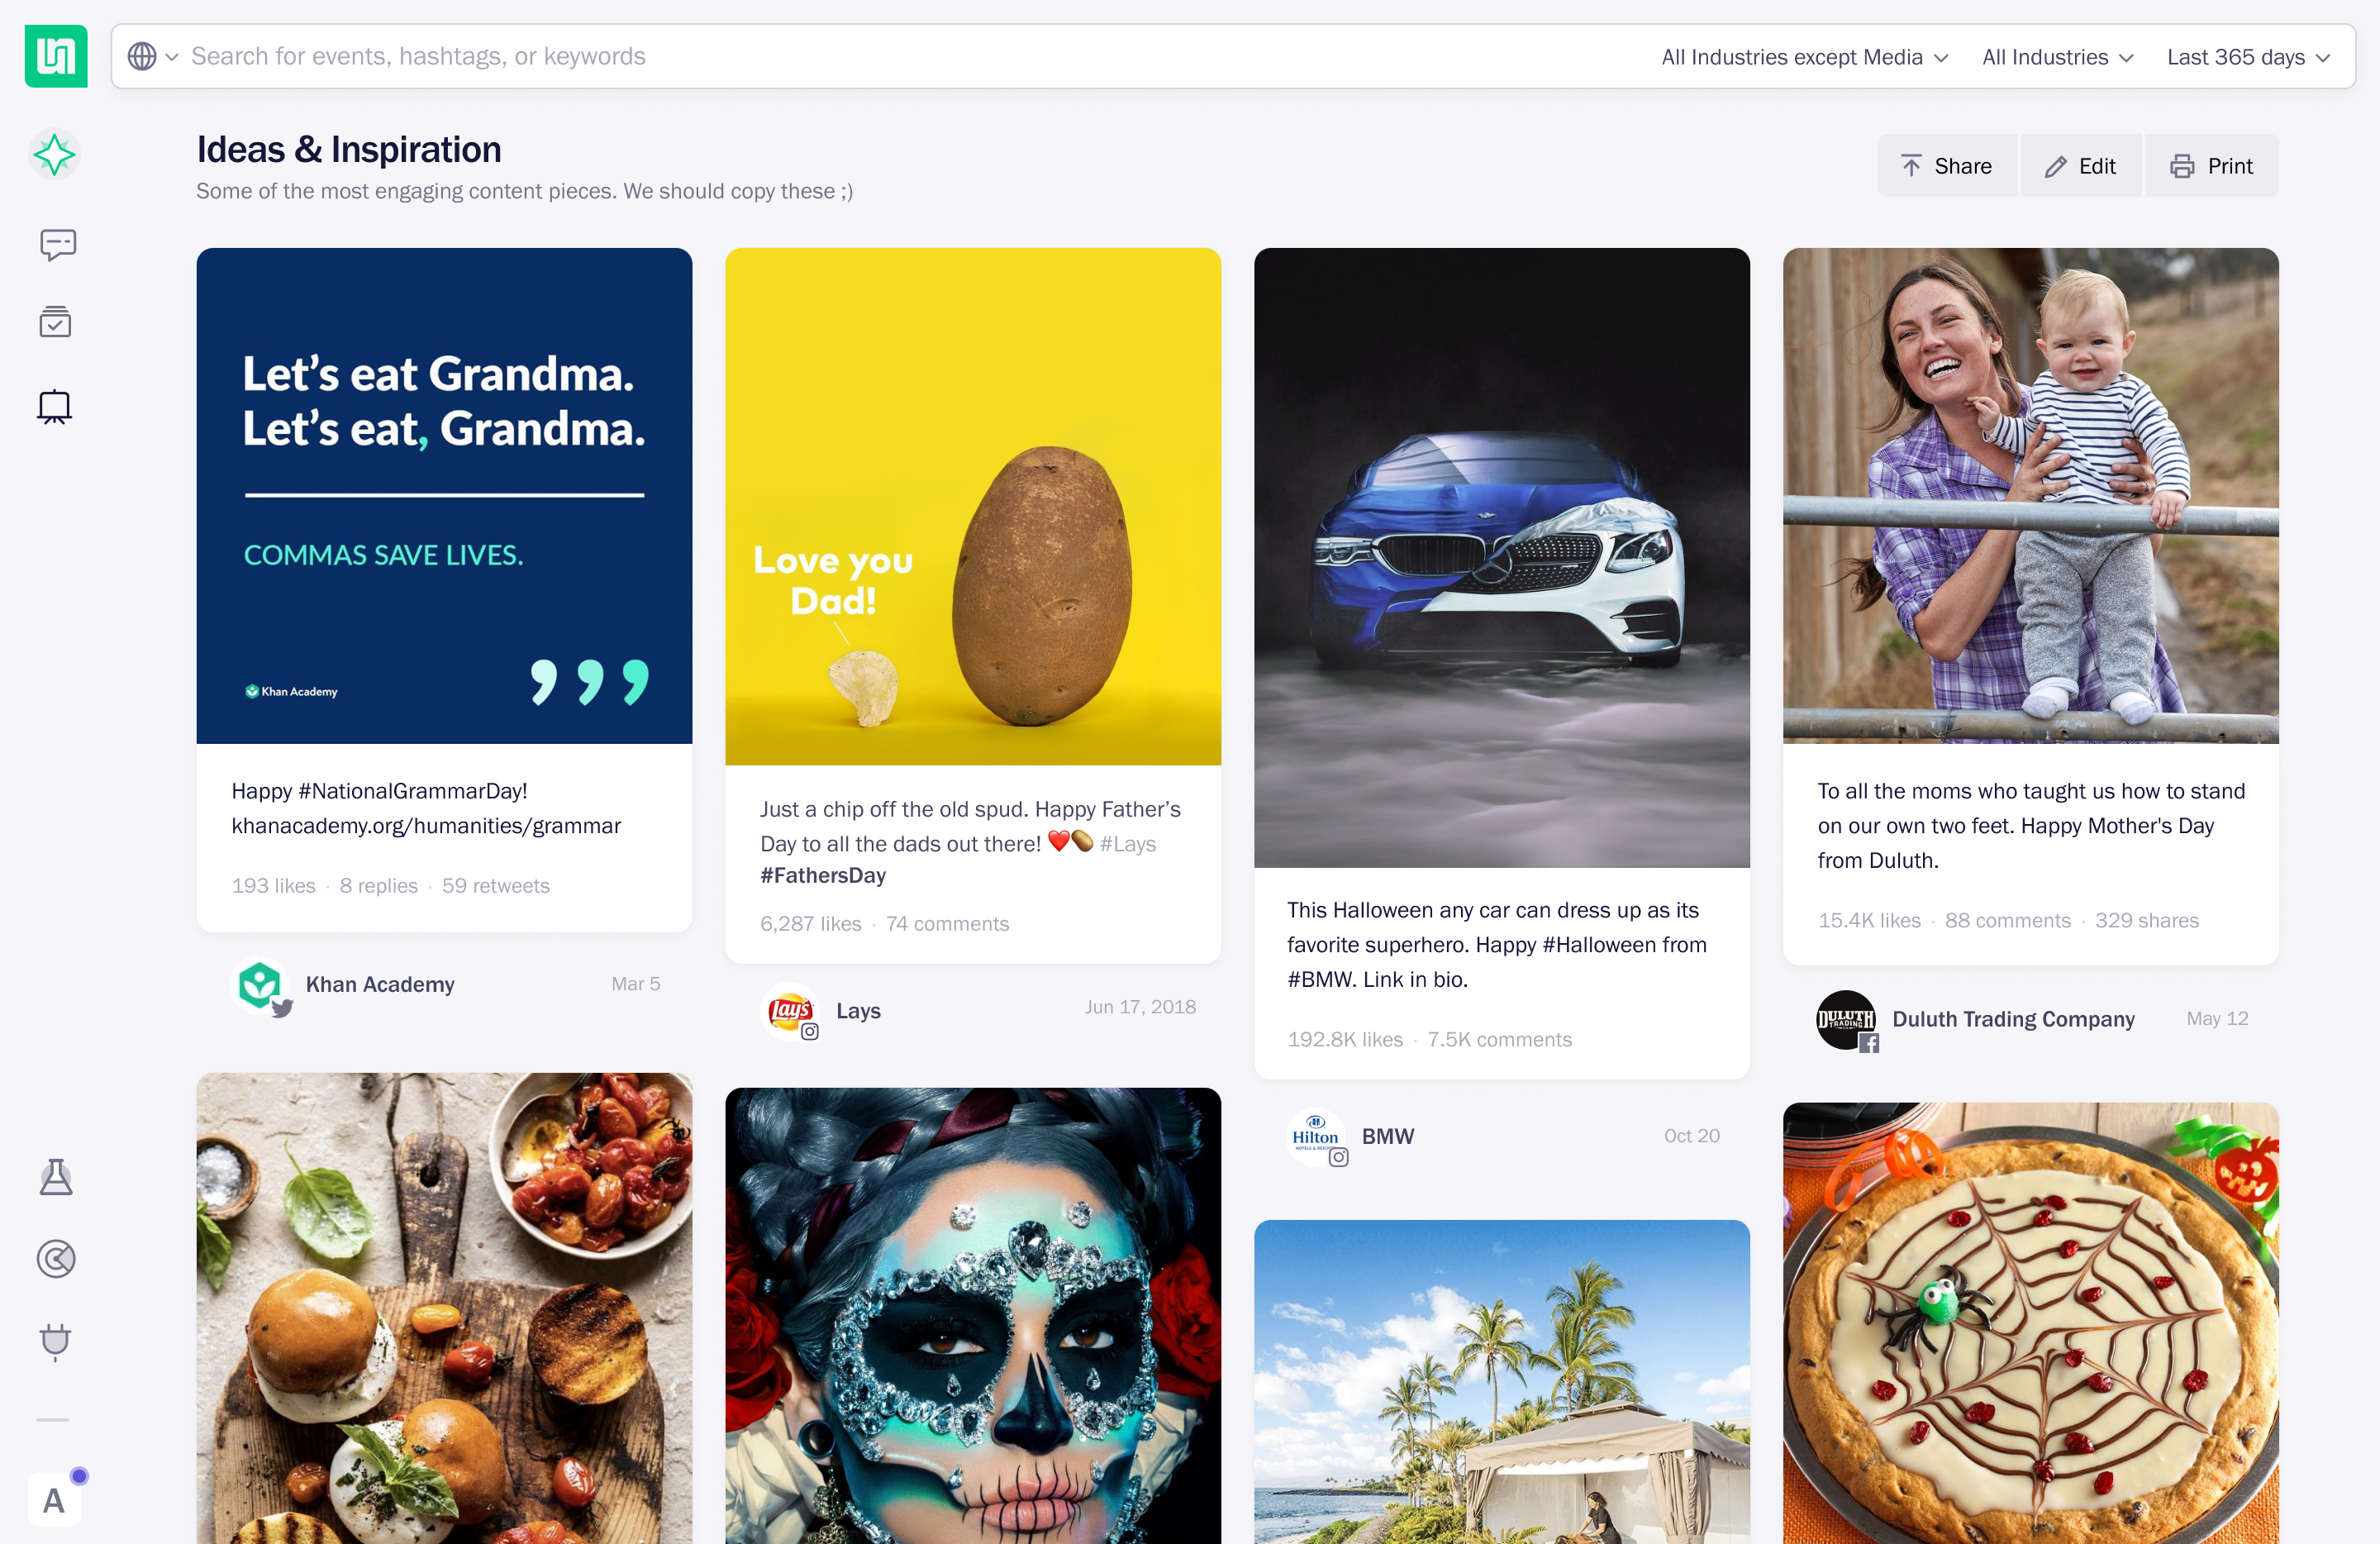 Discover board page